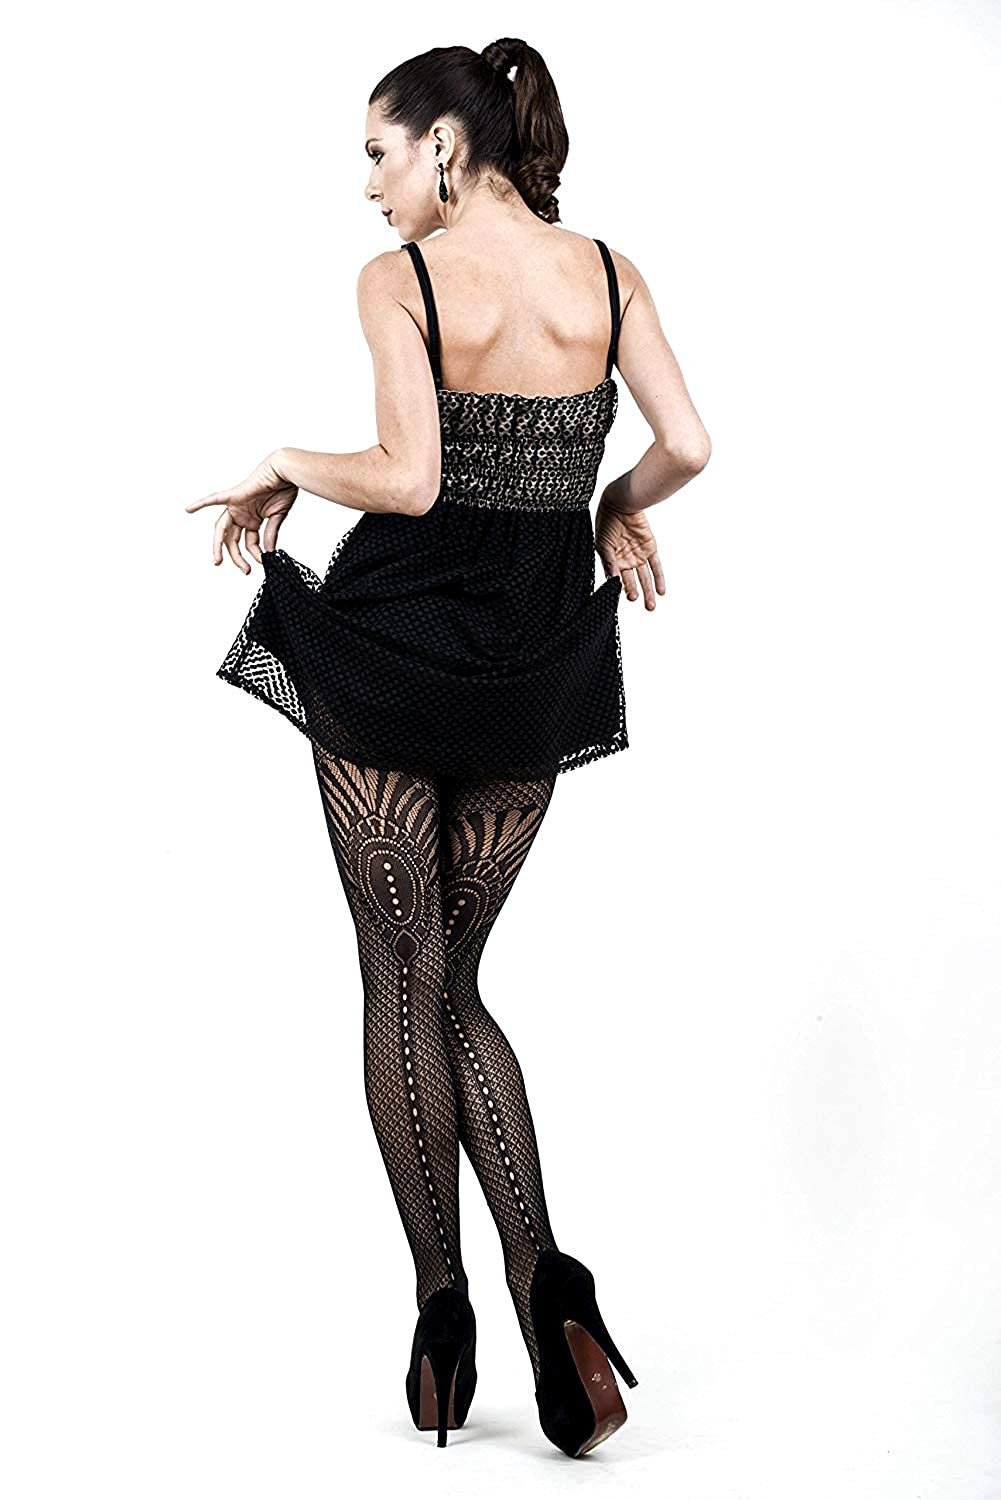 Steampunk Costume Essentials for Women Yelete Killer Legs Womens One/Plus Size Patterned Fishnet Tights Stocking Pantyhose $9.99 AT vintagedancer.com